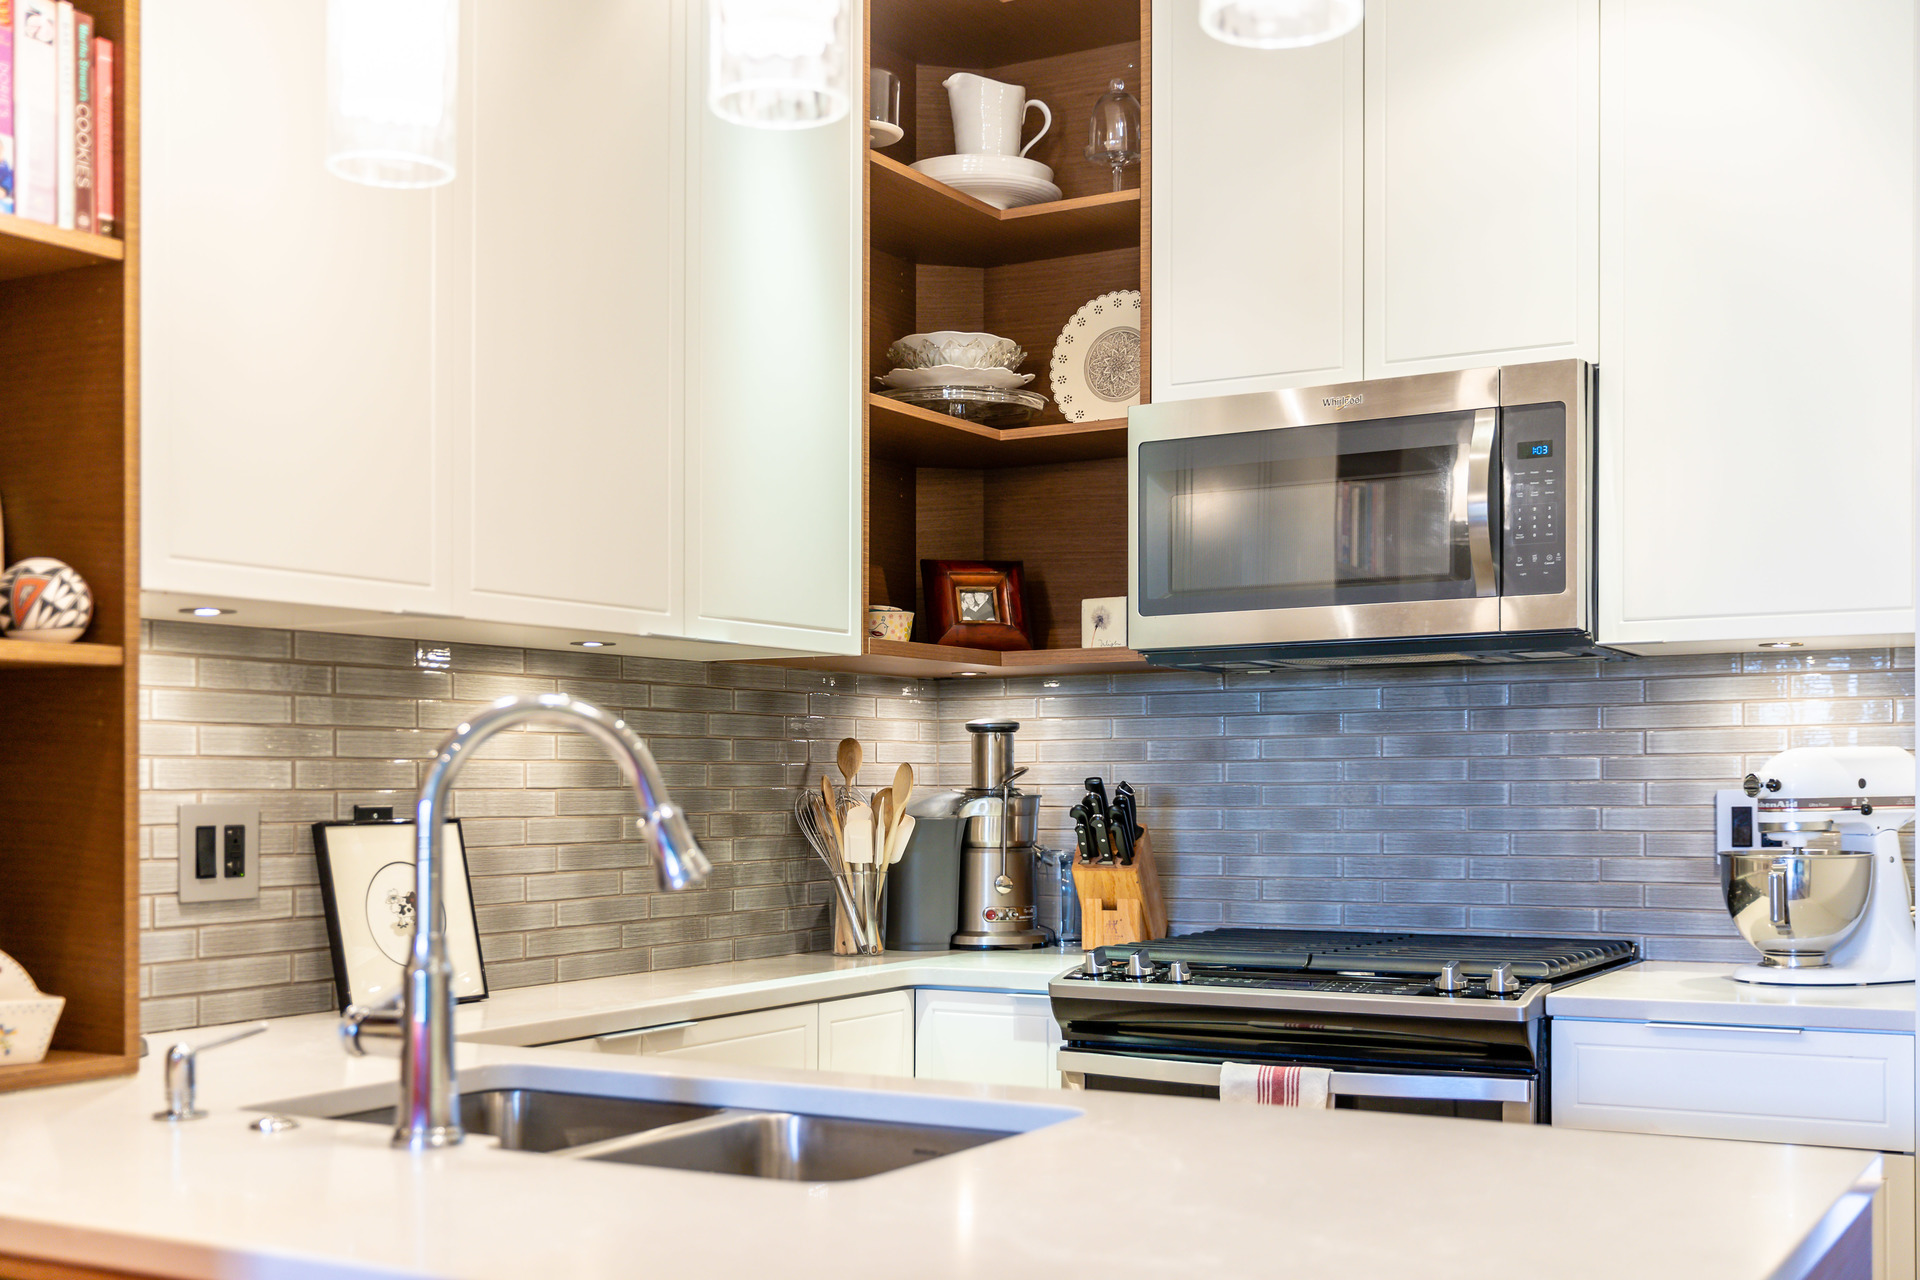 at 306 - 1765 Oak Bay Avenue, Rockland, Victoria